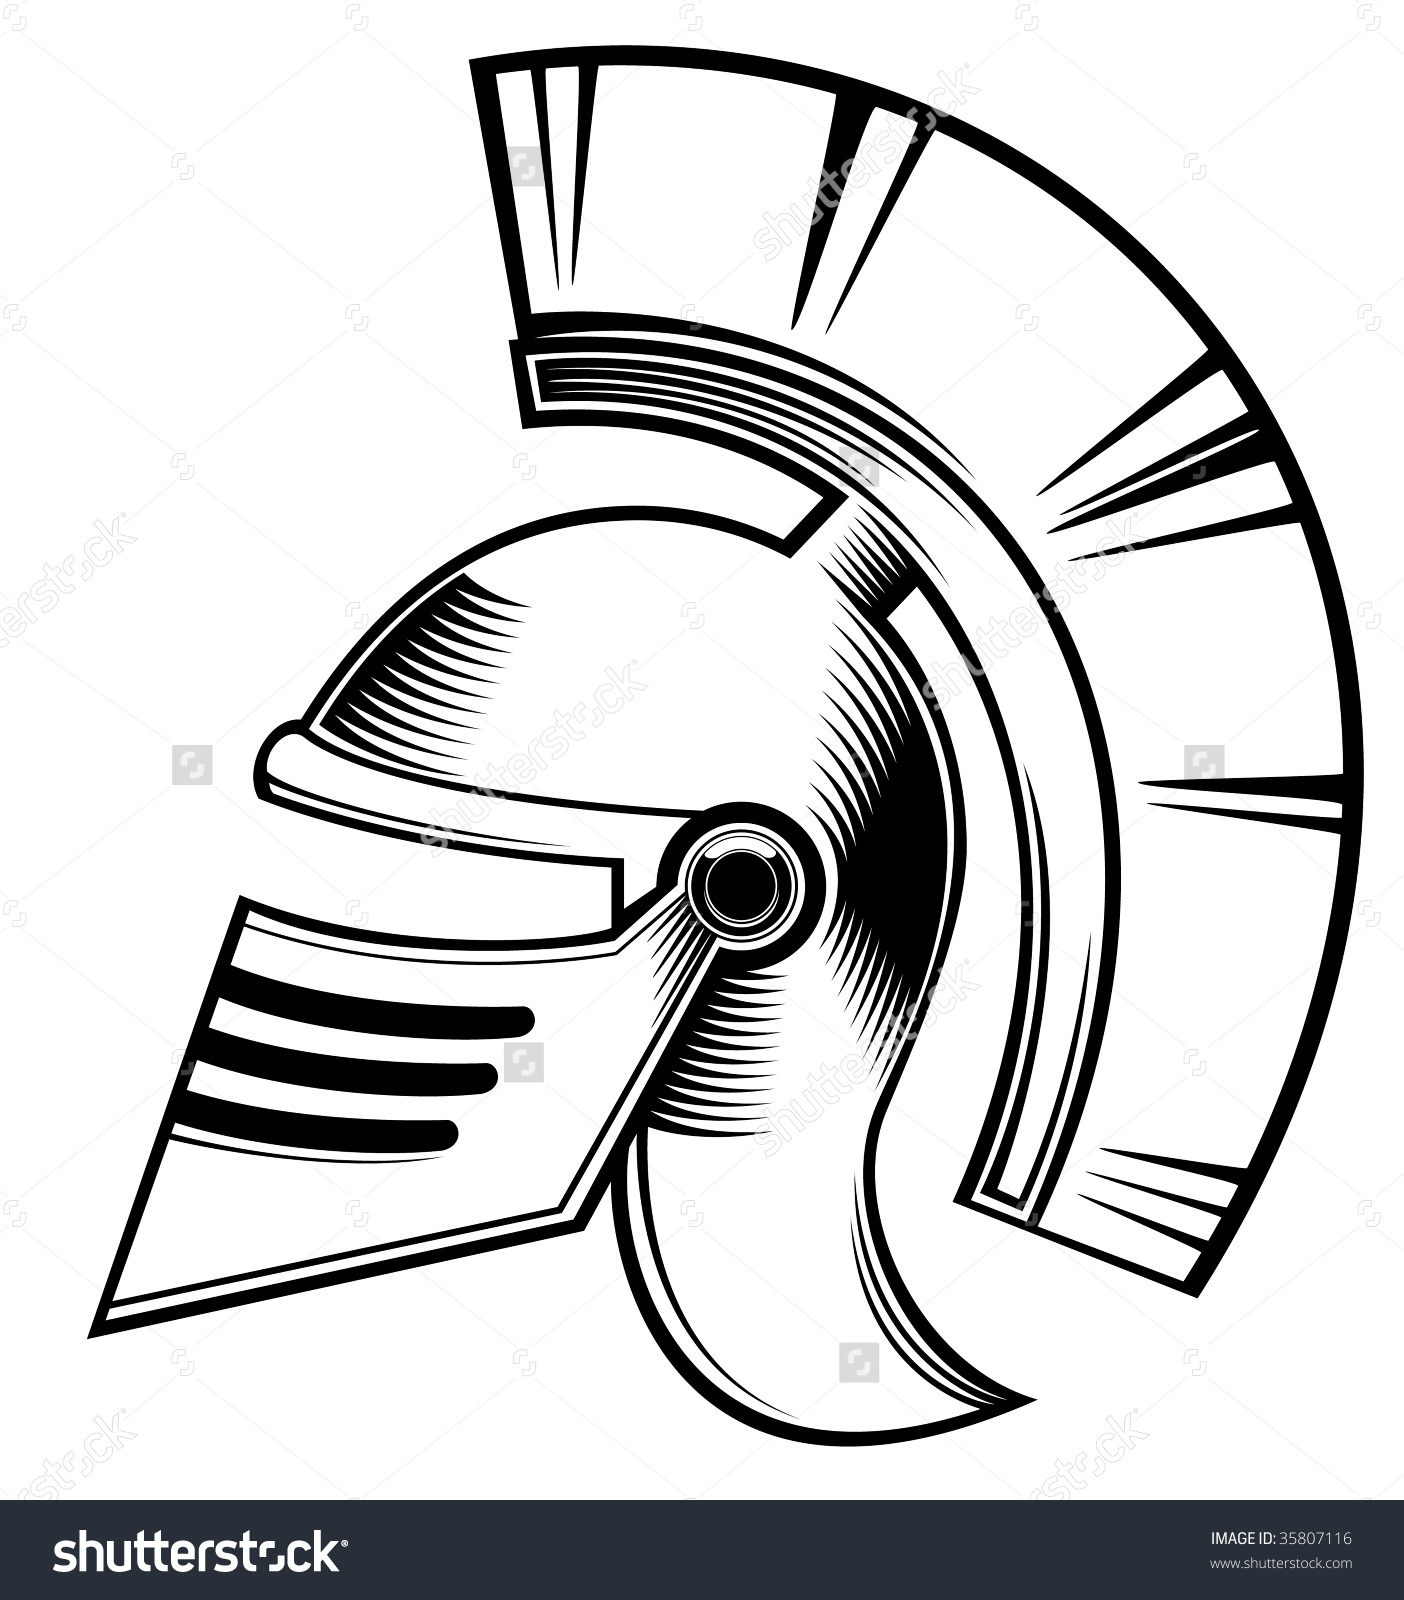 Hoplite Helmet Stock Vector Illustration 35807116 : Shutterstock.